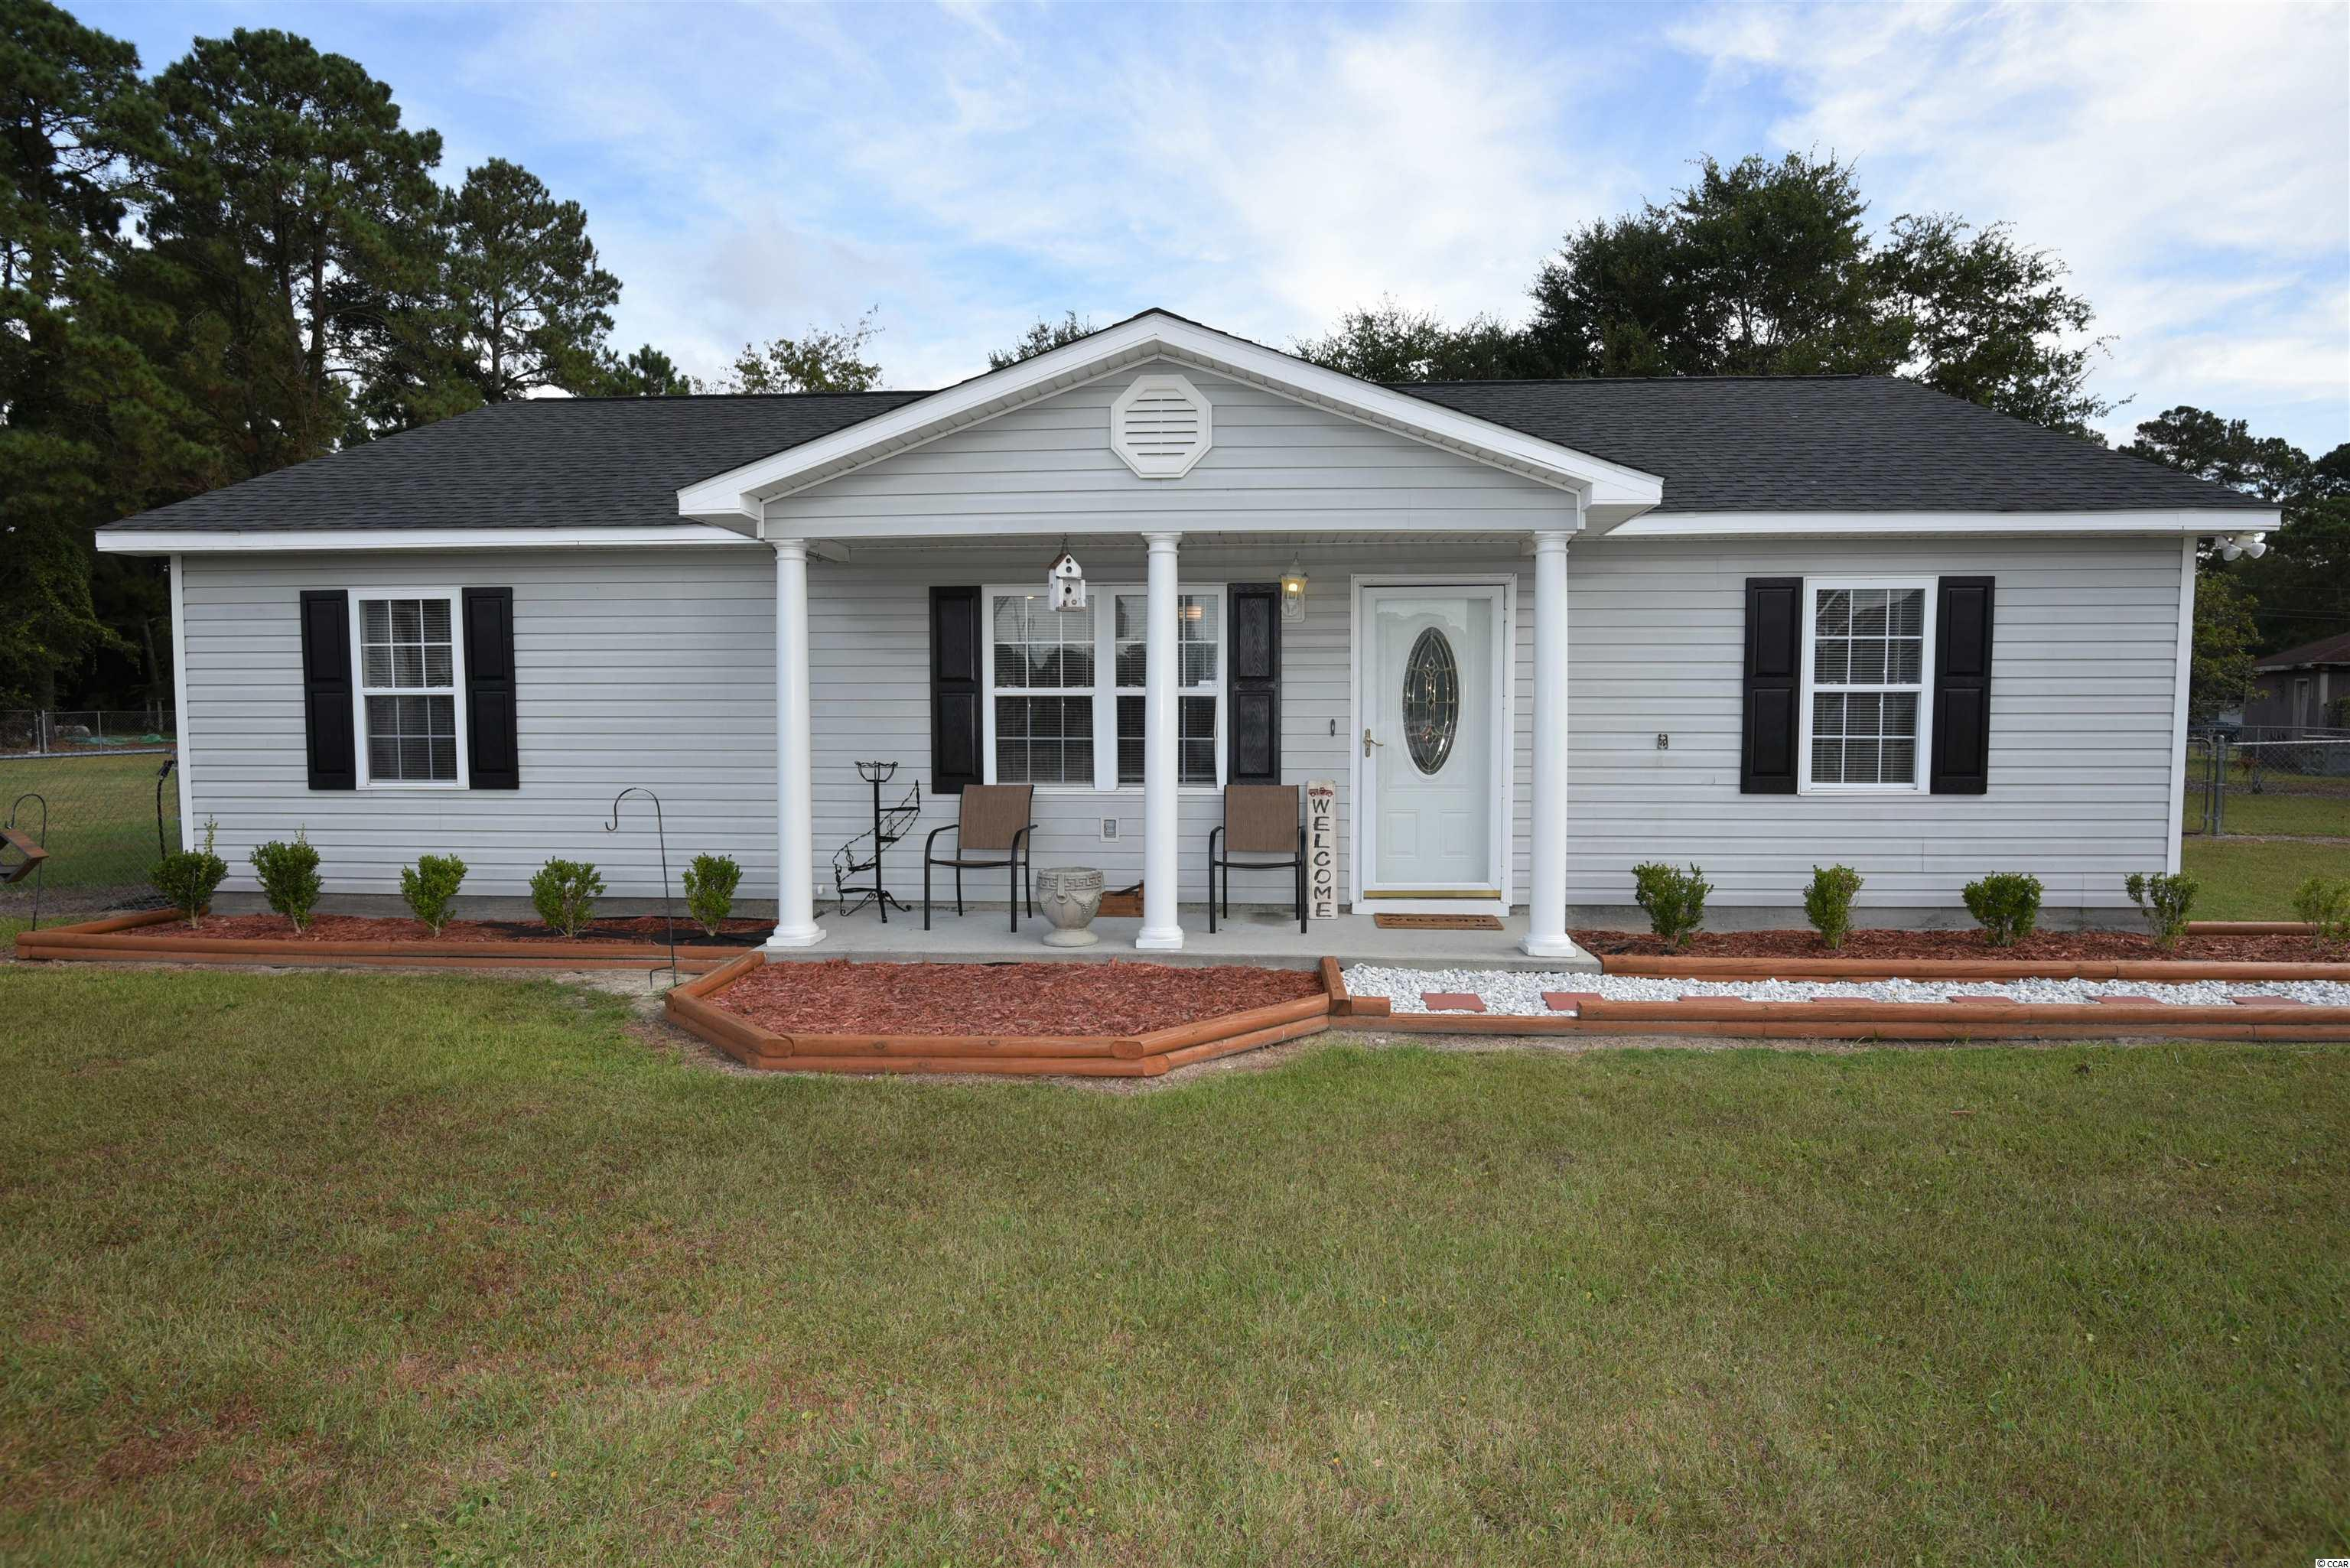 A must see, this 4 bedroom, 2 full bath has been freshly painted and upgraded.  Immaculate inside and move in ready.  Beautiful, fenced in lot at the end of a quiet, dead end street is a perfect spot for young families or people with pets.  Conveniently located, this home is located just 10 minutes from the beach at Cherry Grove and minutes from the areas many golf courses and local restaurants.